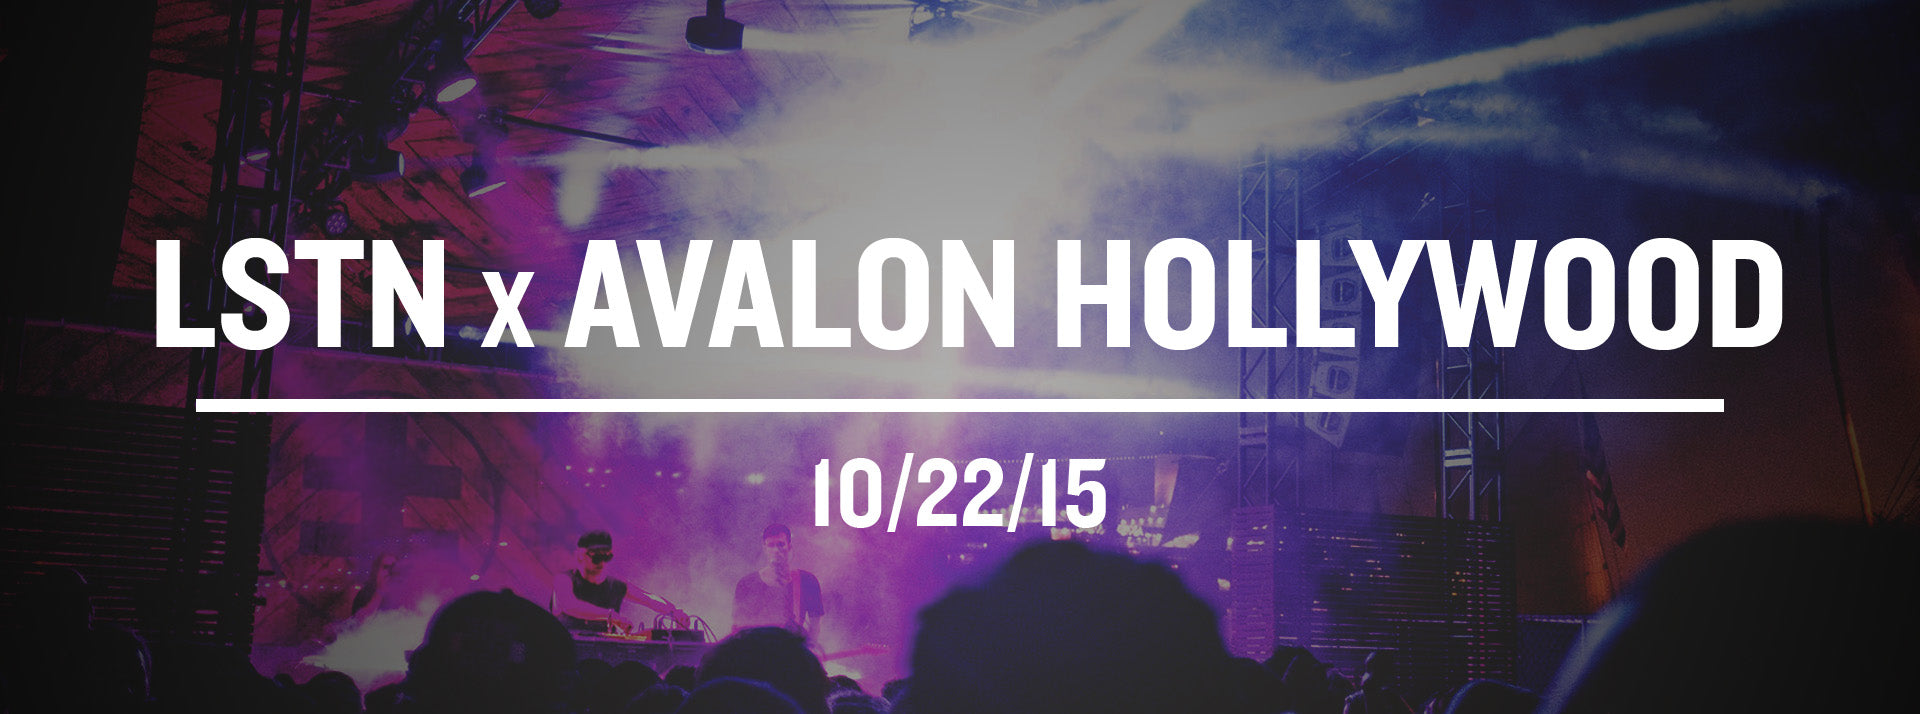 avalon hollywood halloween lstn sound headphone contest